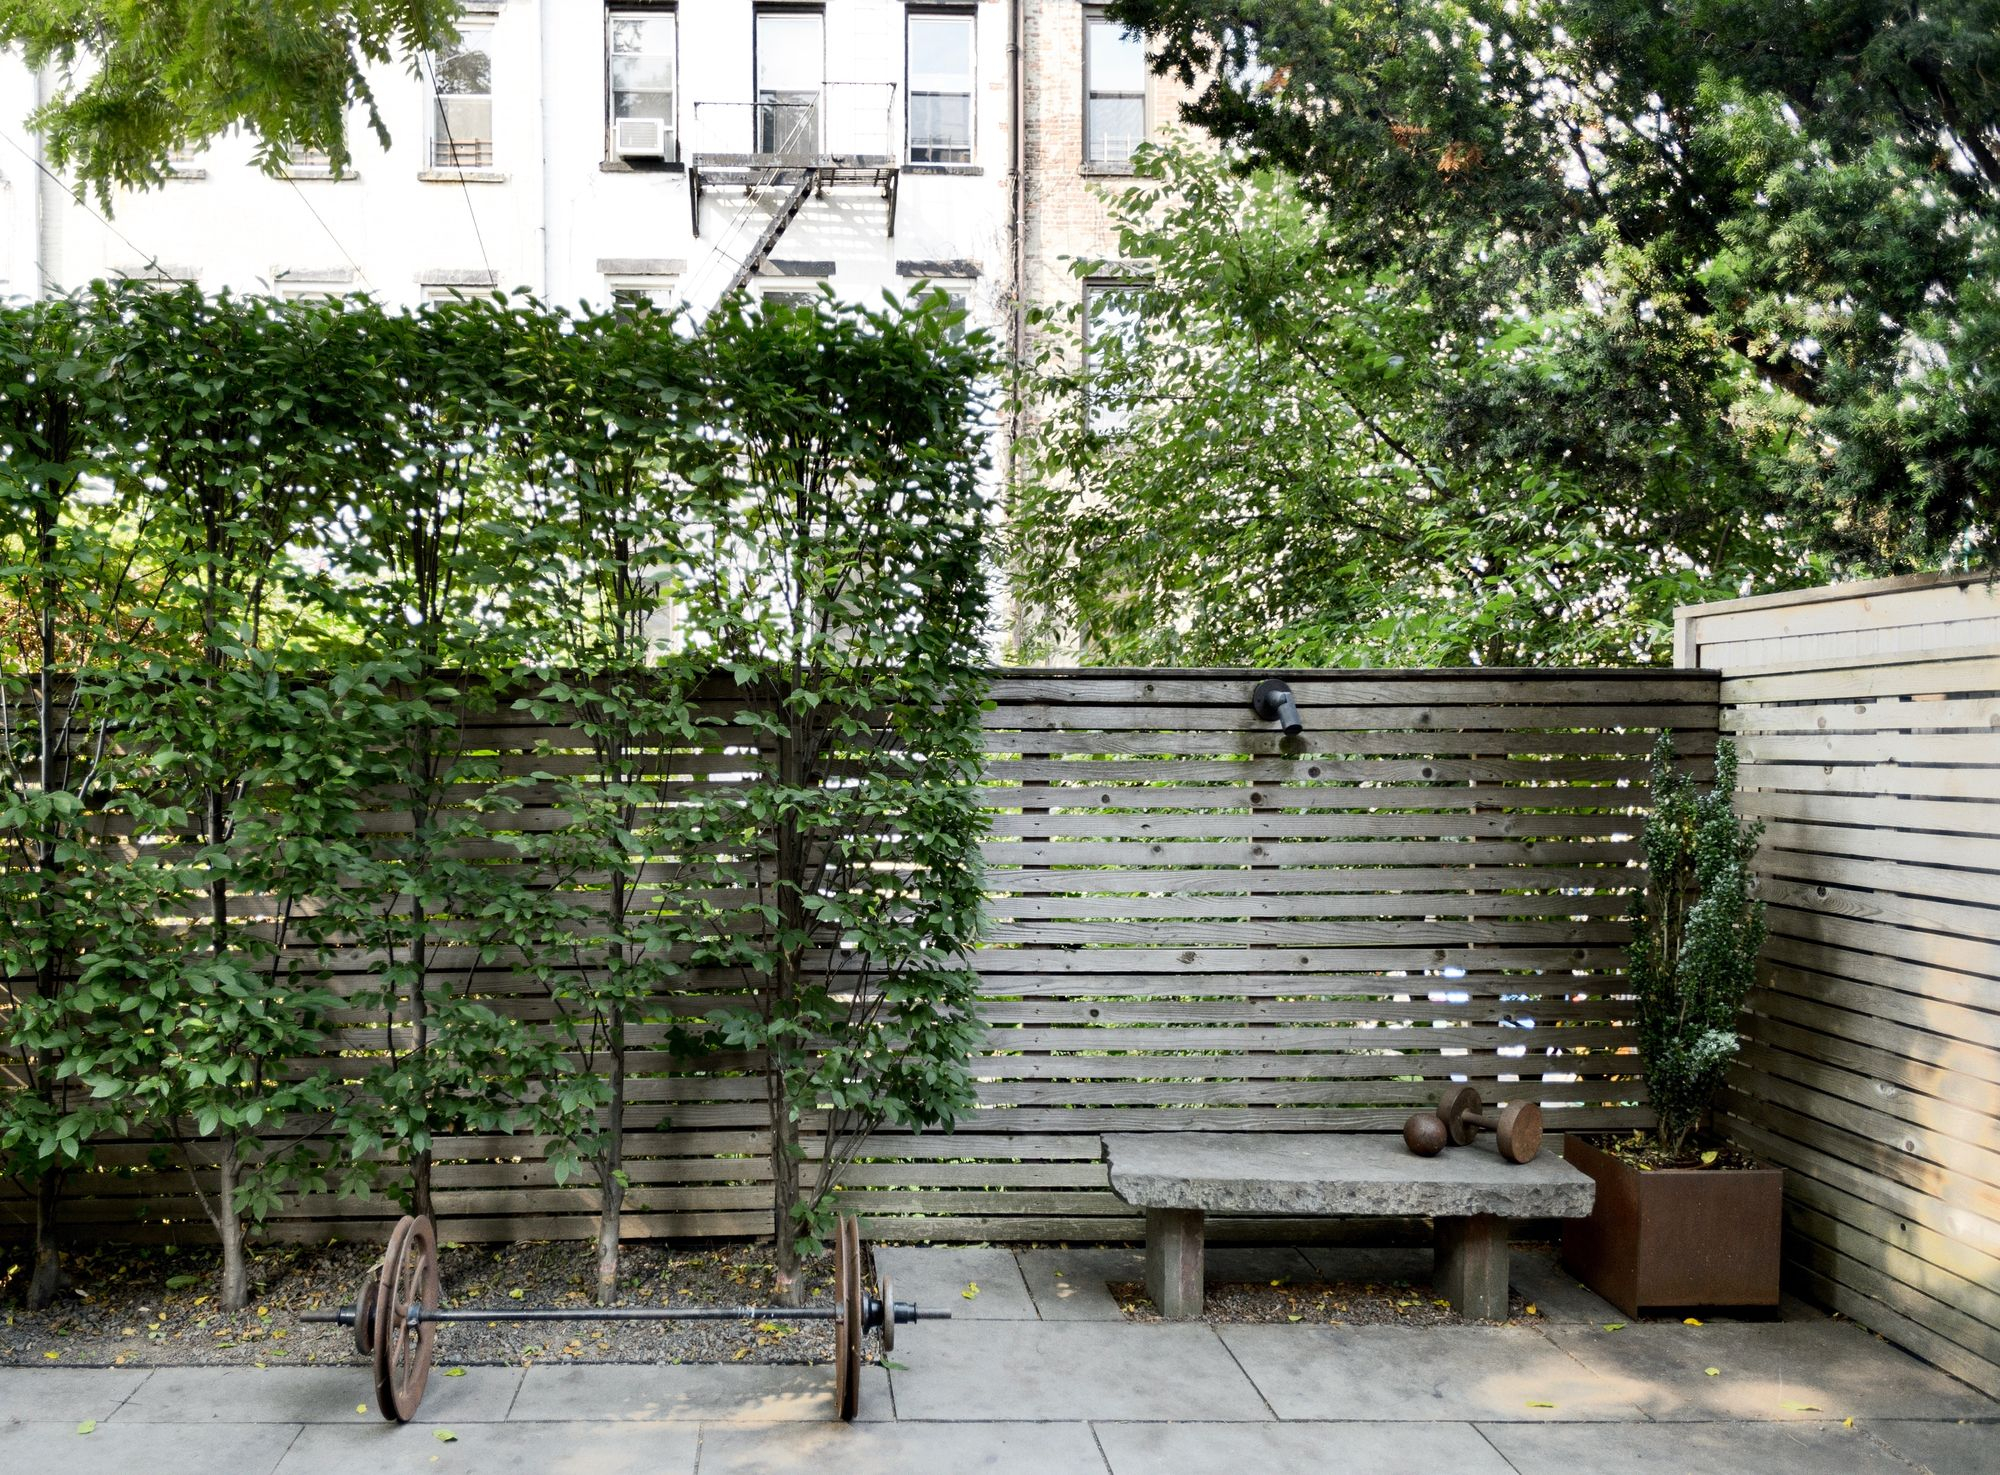 24.SIMPHOME.COM garden hacks 10 ideas for privacy screens gardenista